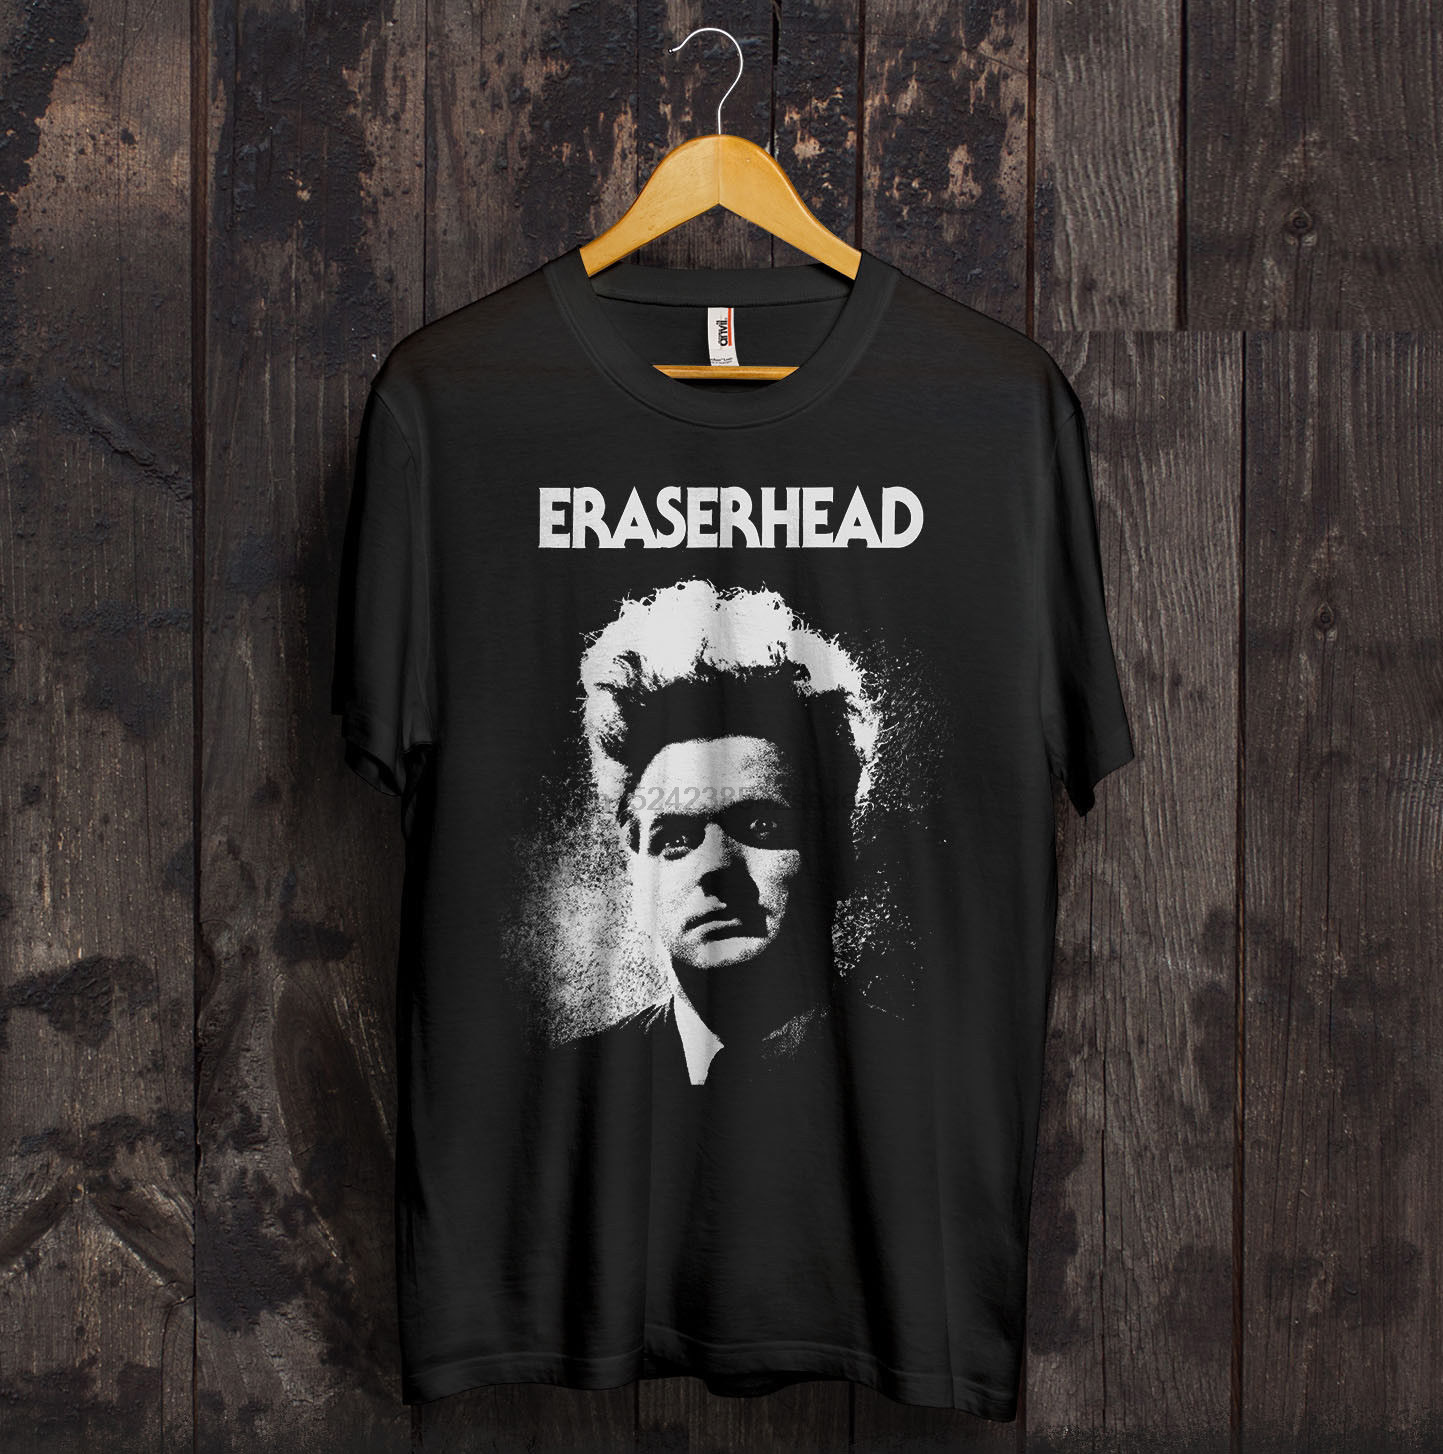 Eraserhead T Shirt David Lynch Cult Horror Movie Twin Peaks Gift S-XXXL Novelty Cool Tops Men Short Sleeve T-Shirt Top Tee image